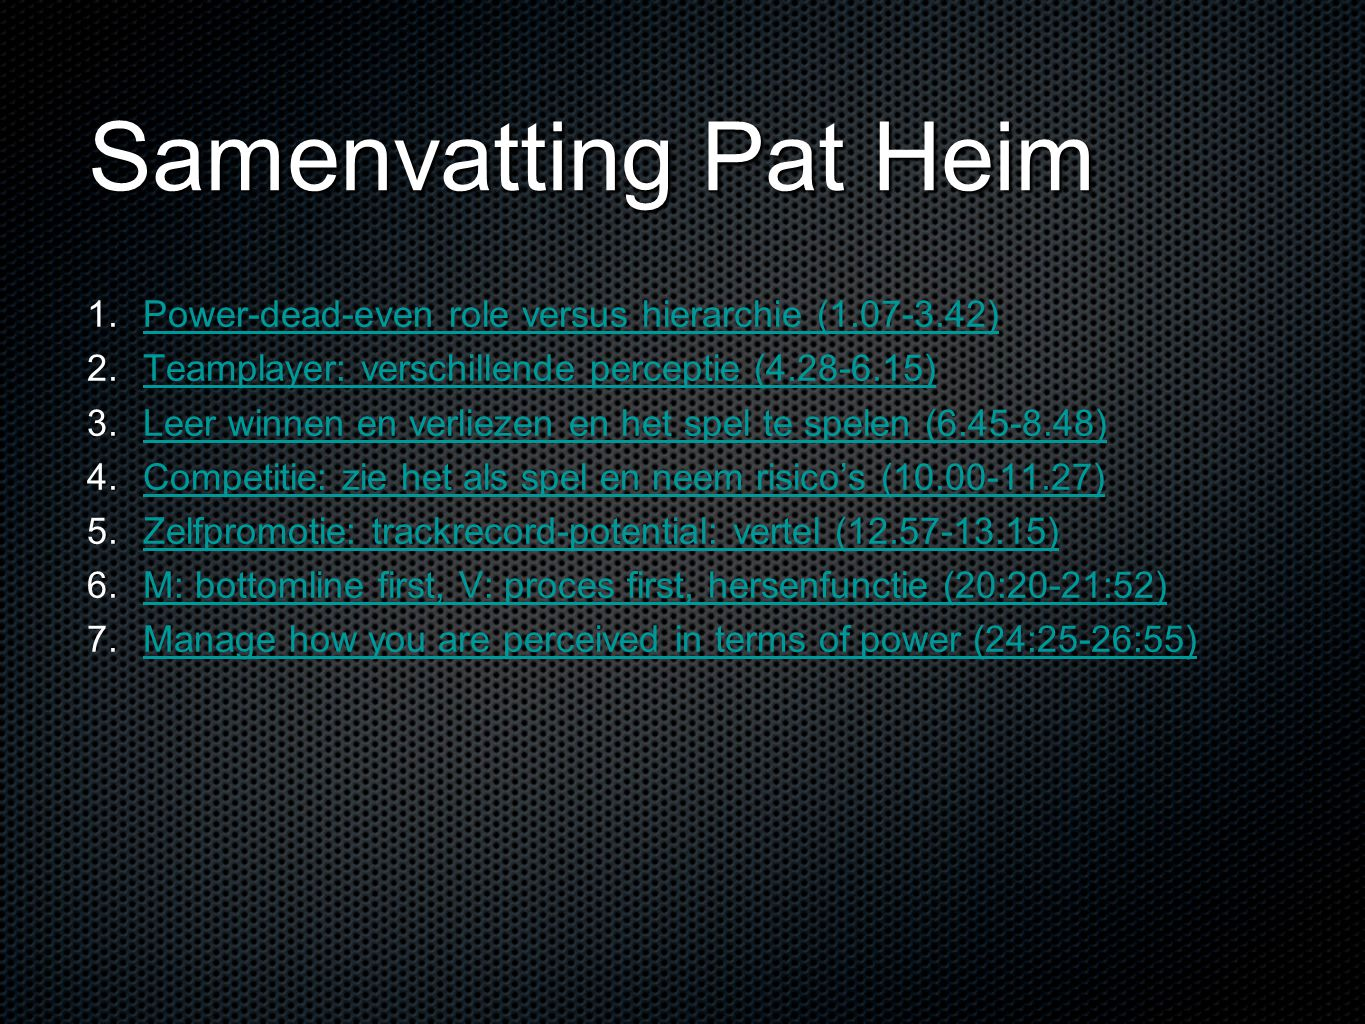 Samenvatting Pat Heim Power-dead-even role versus hierarchie (1.07-3.42) Teamplayer: verschillende perceptie (4.28-6.15)